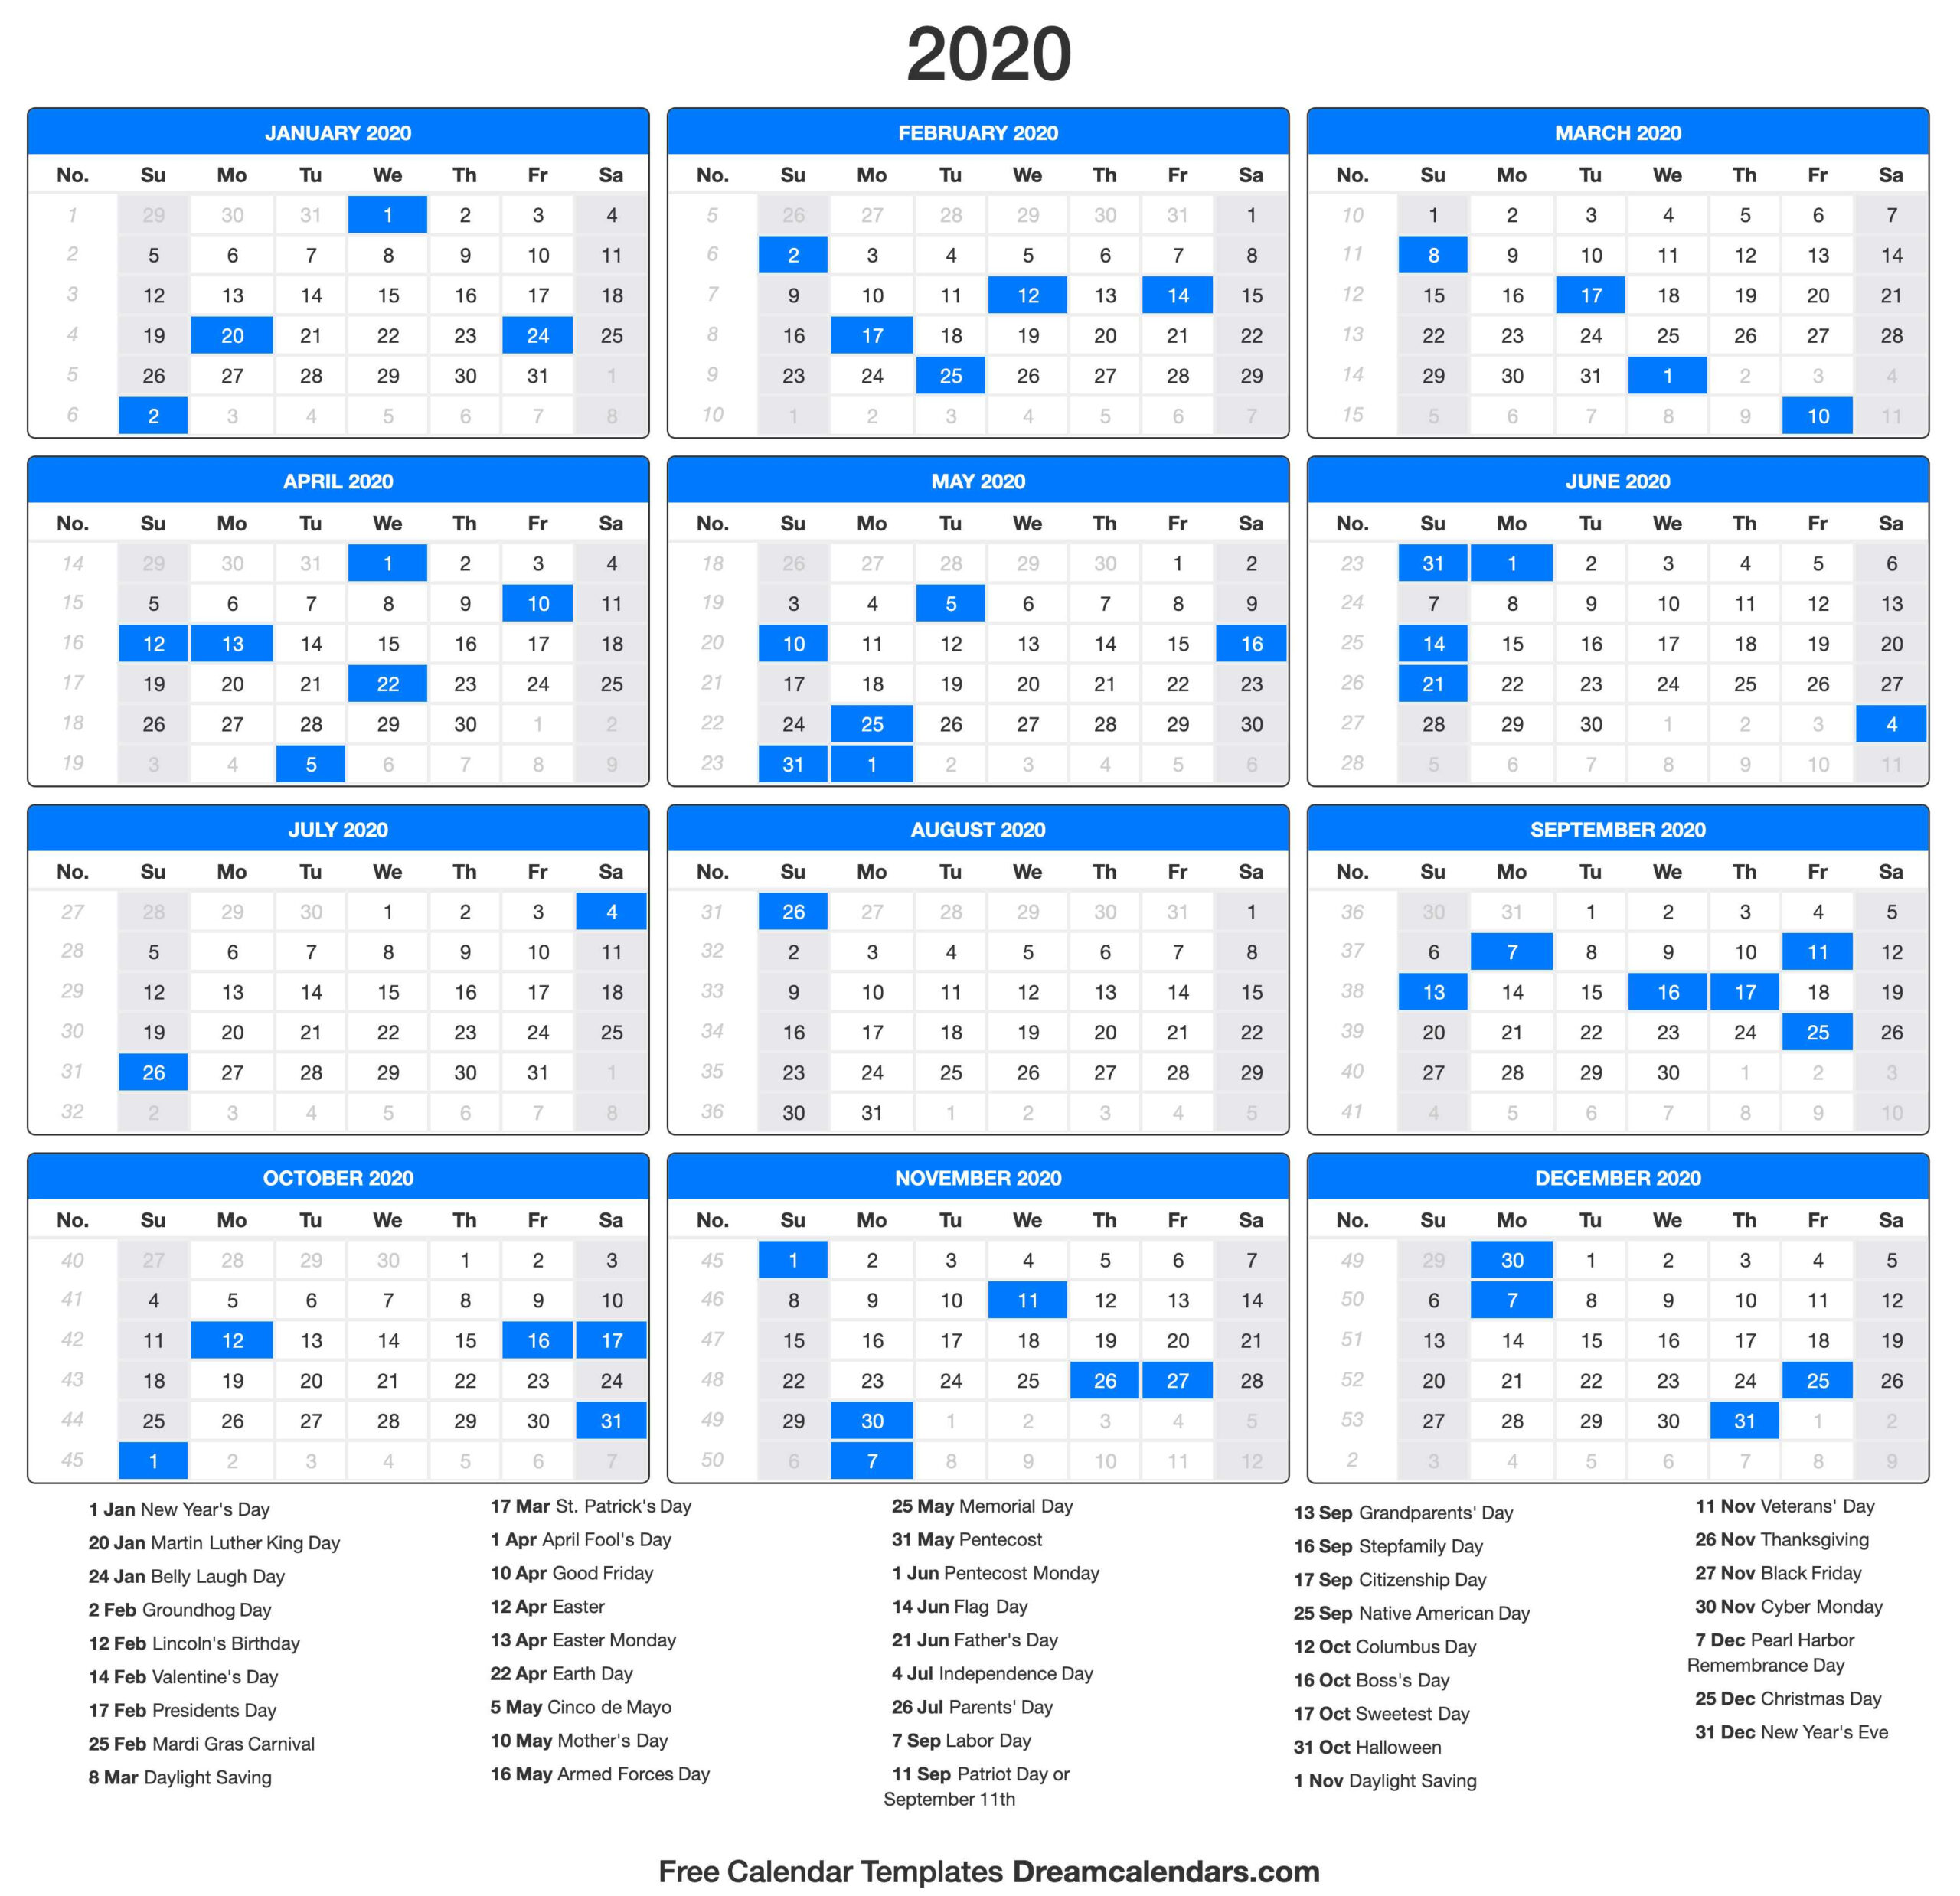 Government Calendar 2020 With Holidays | Calendar